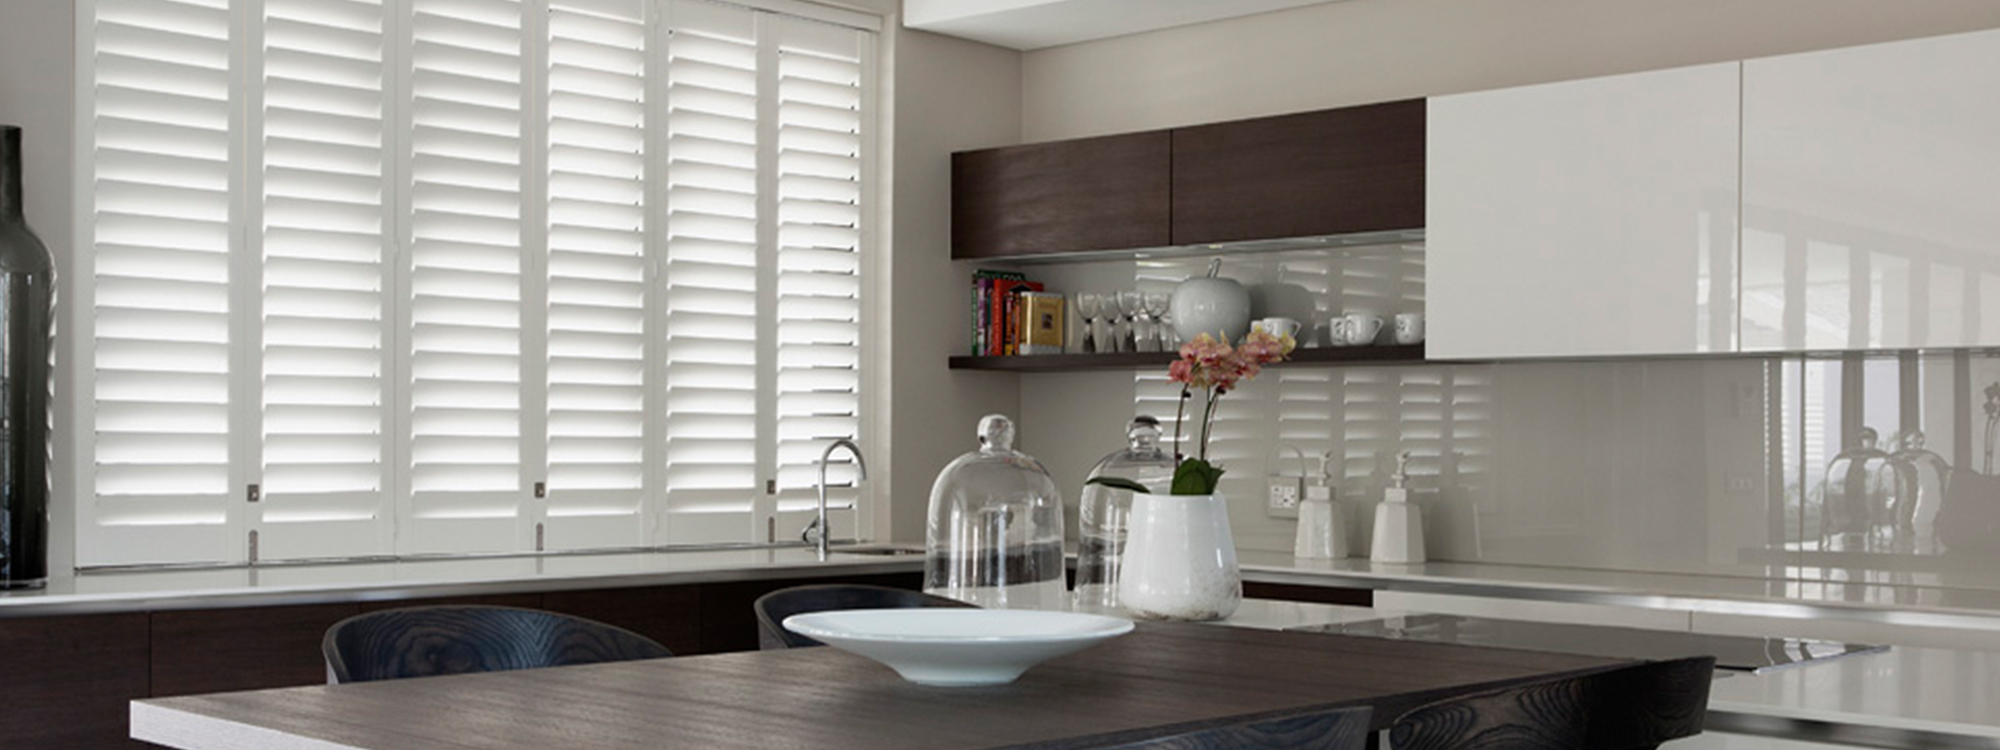 Decowood-shutters-kitchen-eco-friendly-interior